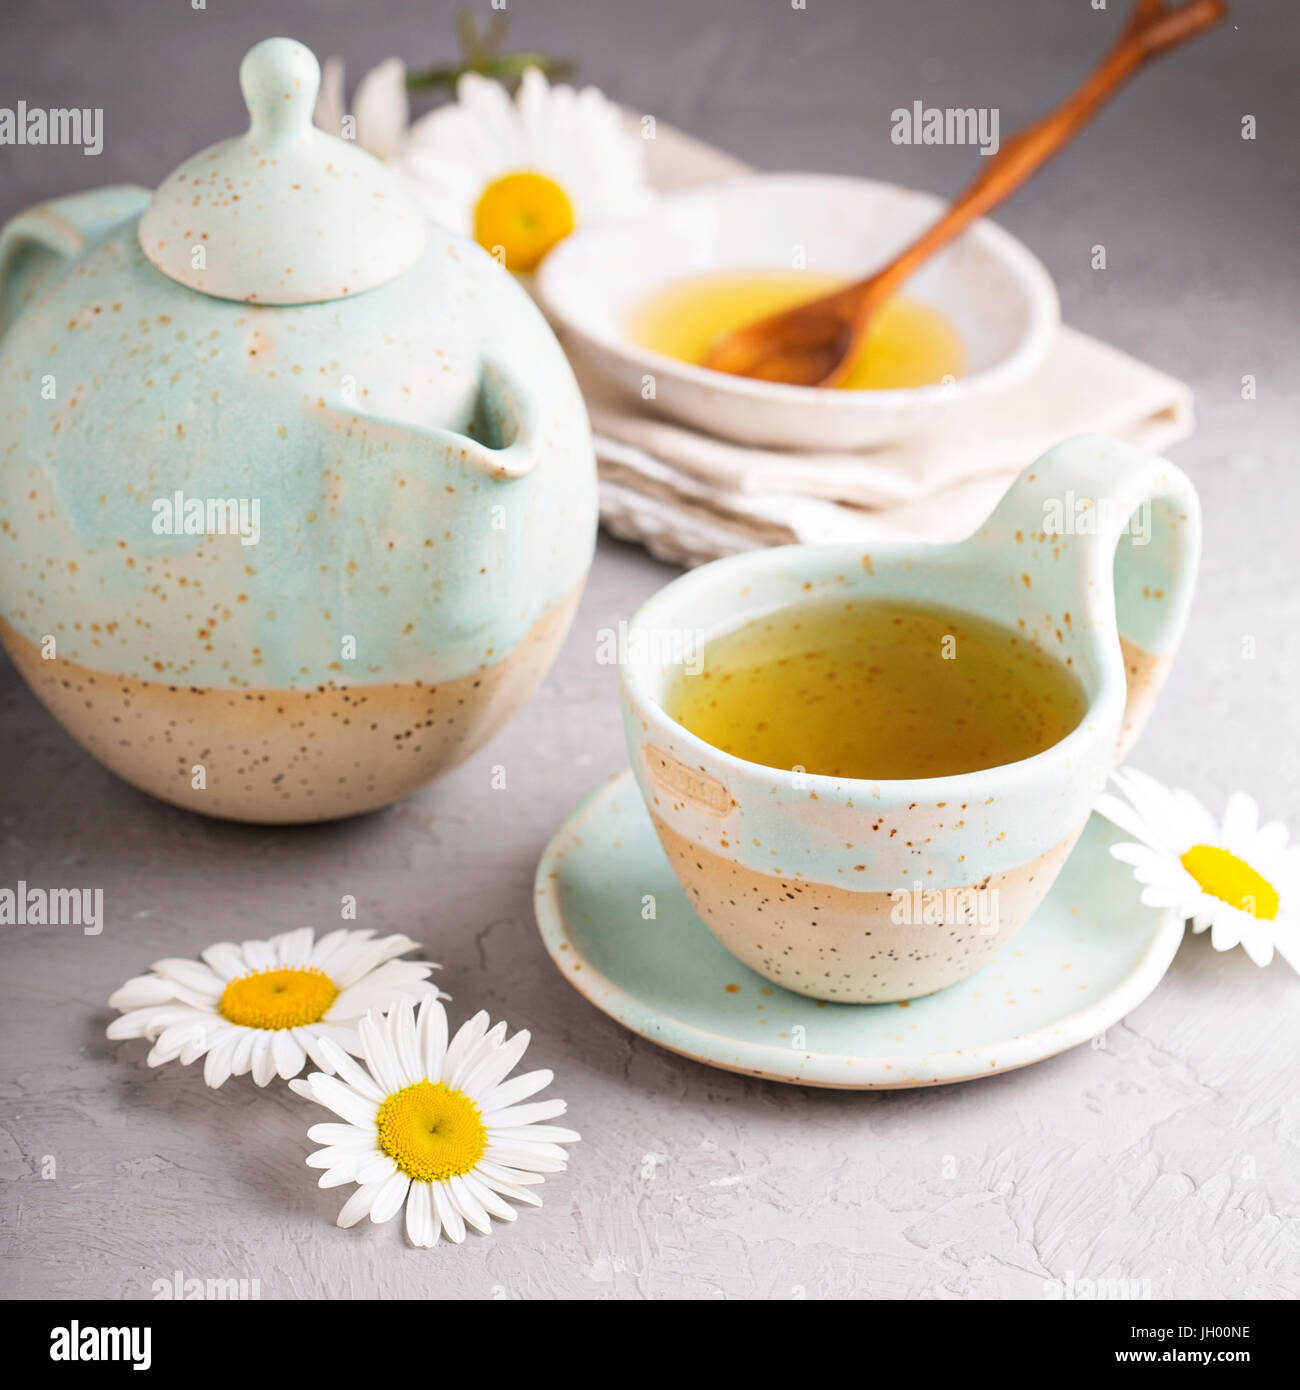 Camomille tea in handmade ceramic cup - Stock Image